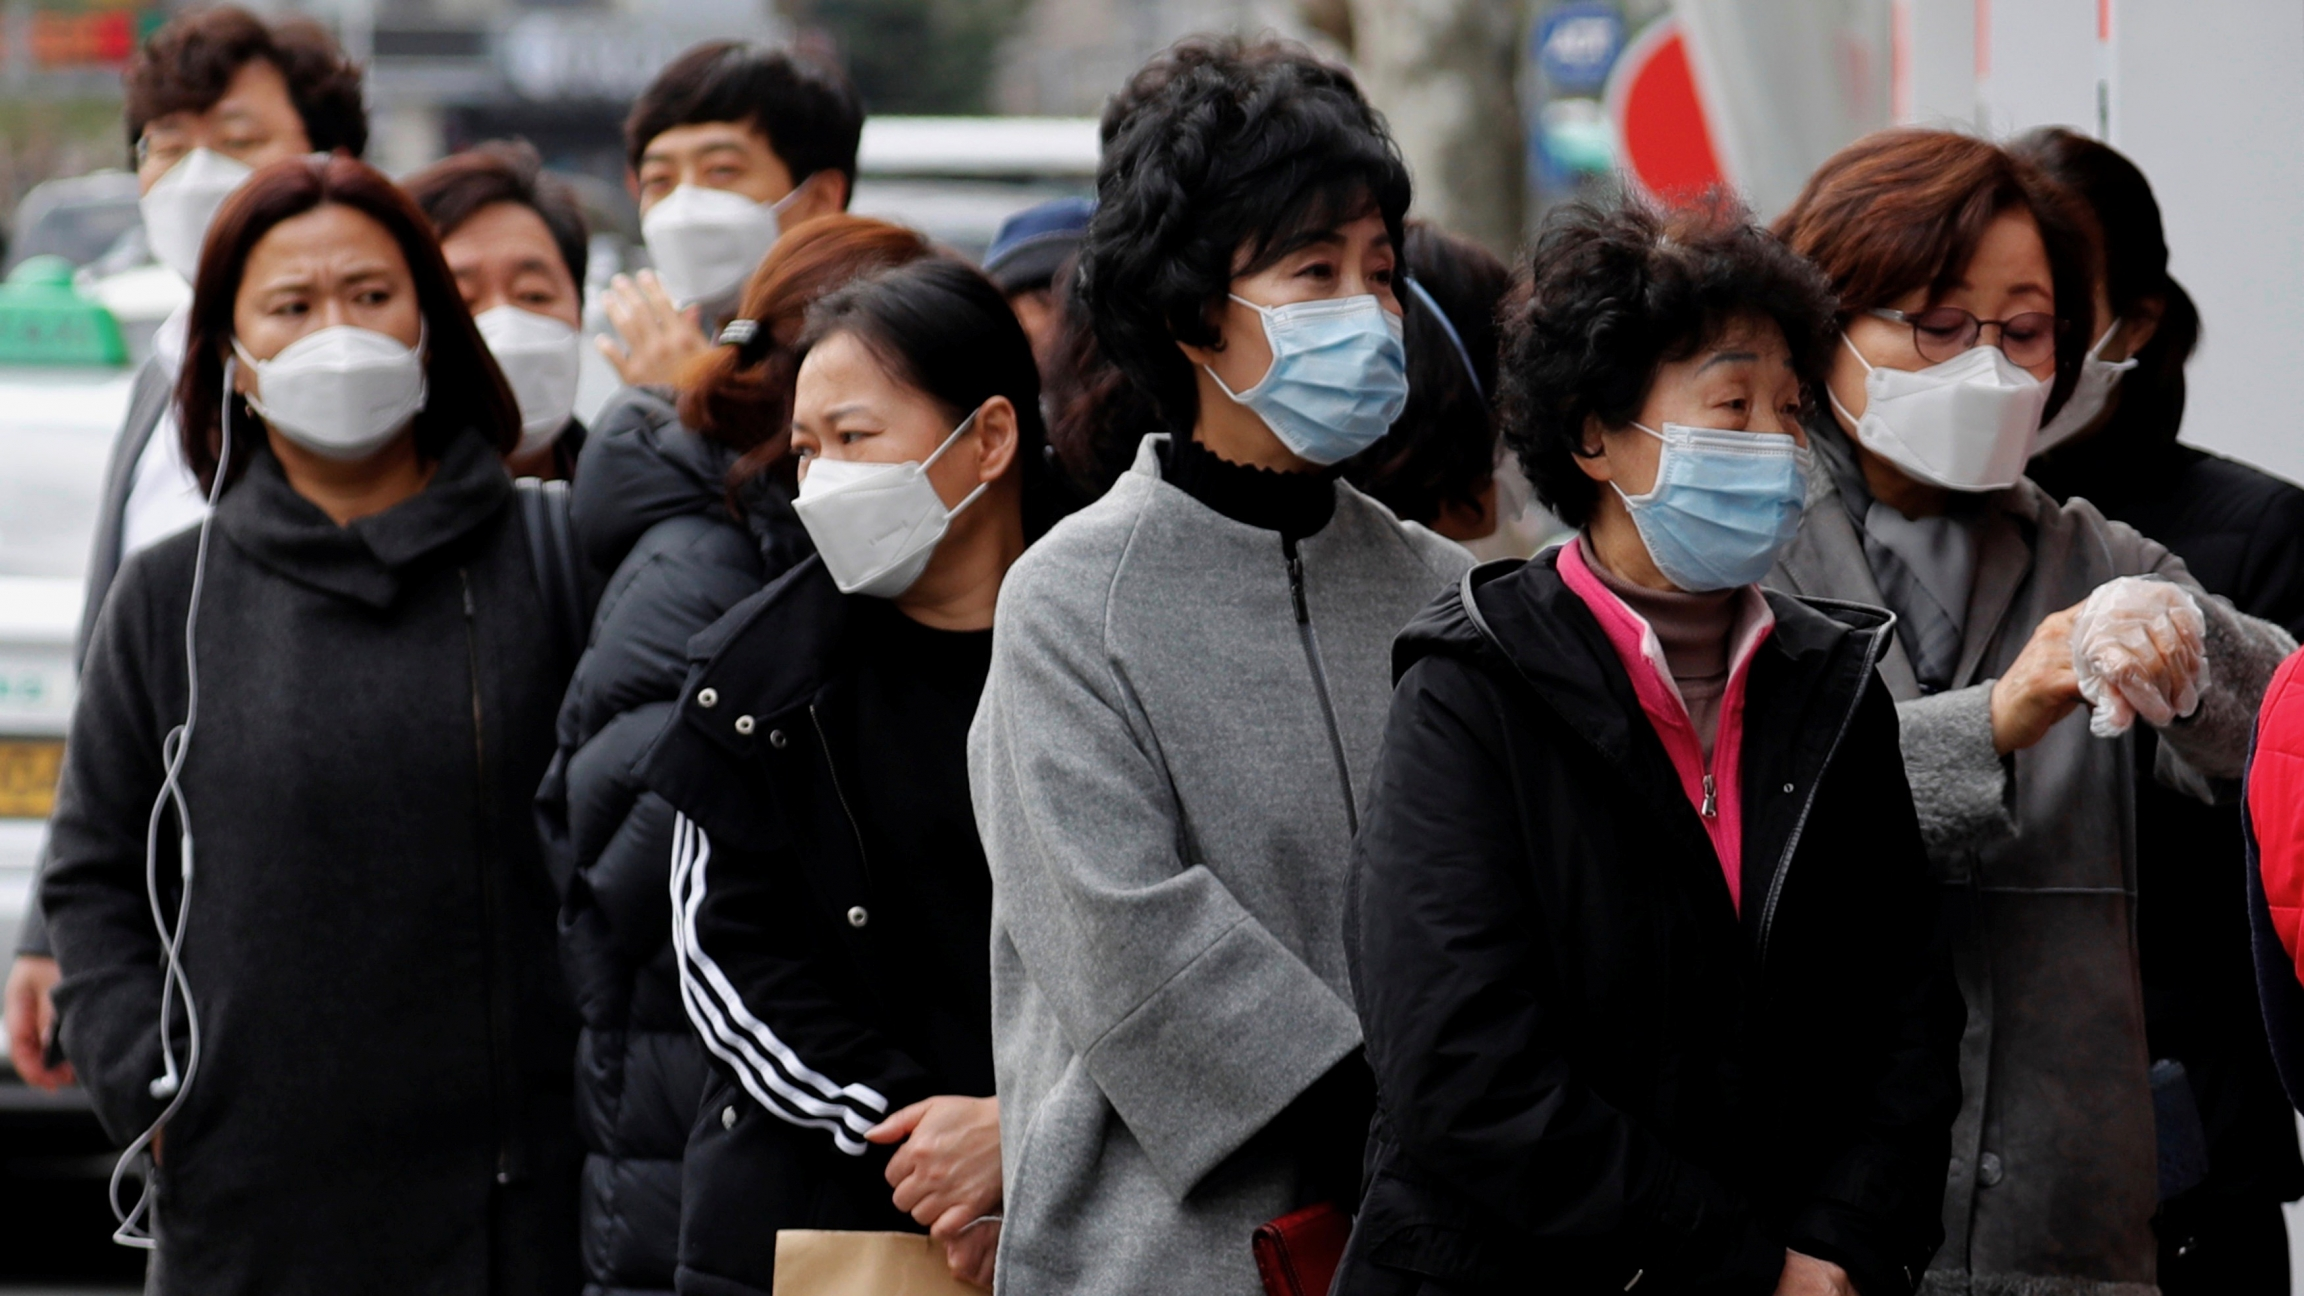 CNN: South Korea sees rise in new cases and clusters, after a week of slowed infections